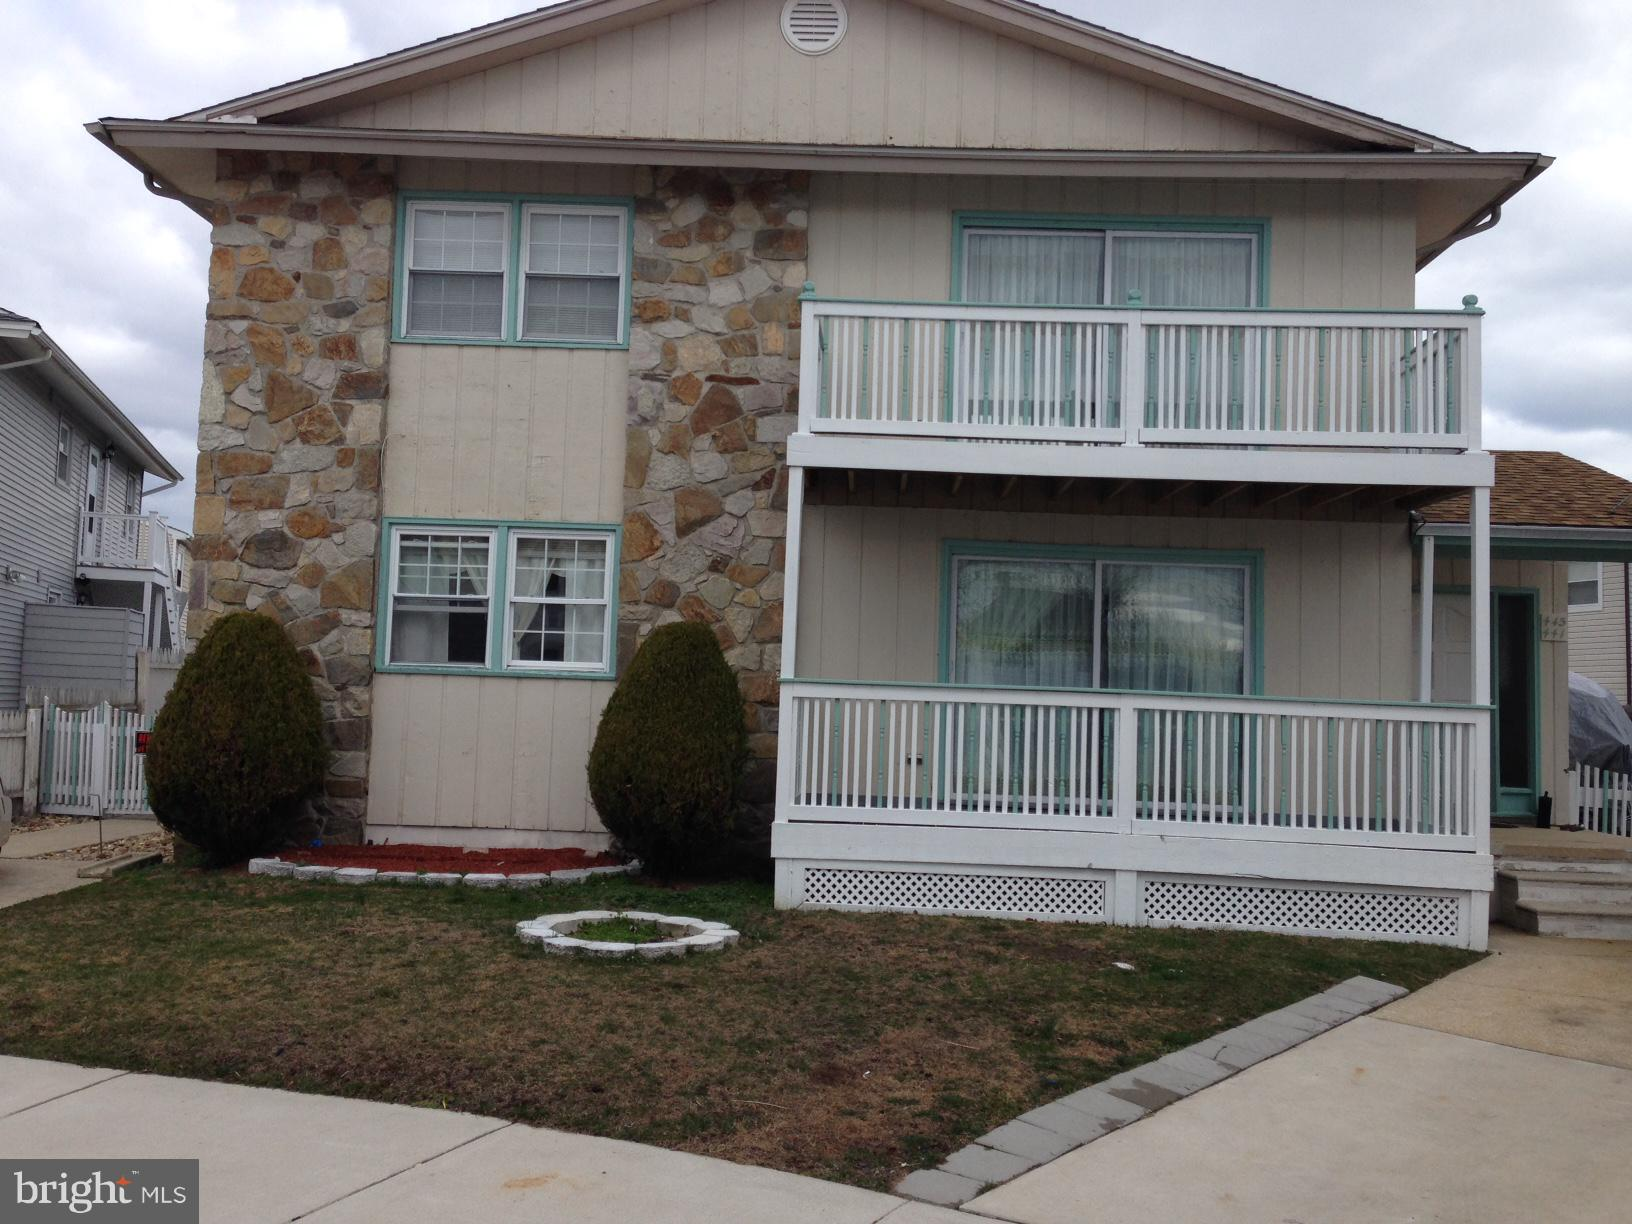 441 - 443 BERKSHIRE DRIVE, VENTNOR CITY, NJ 08406